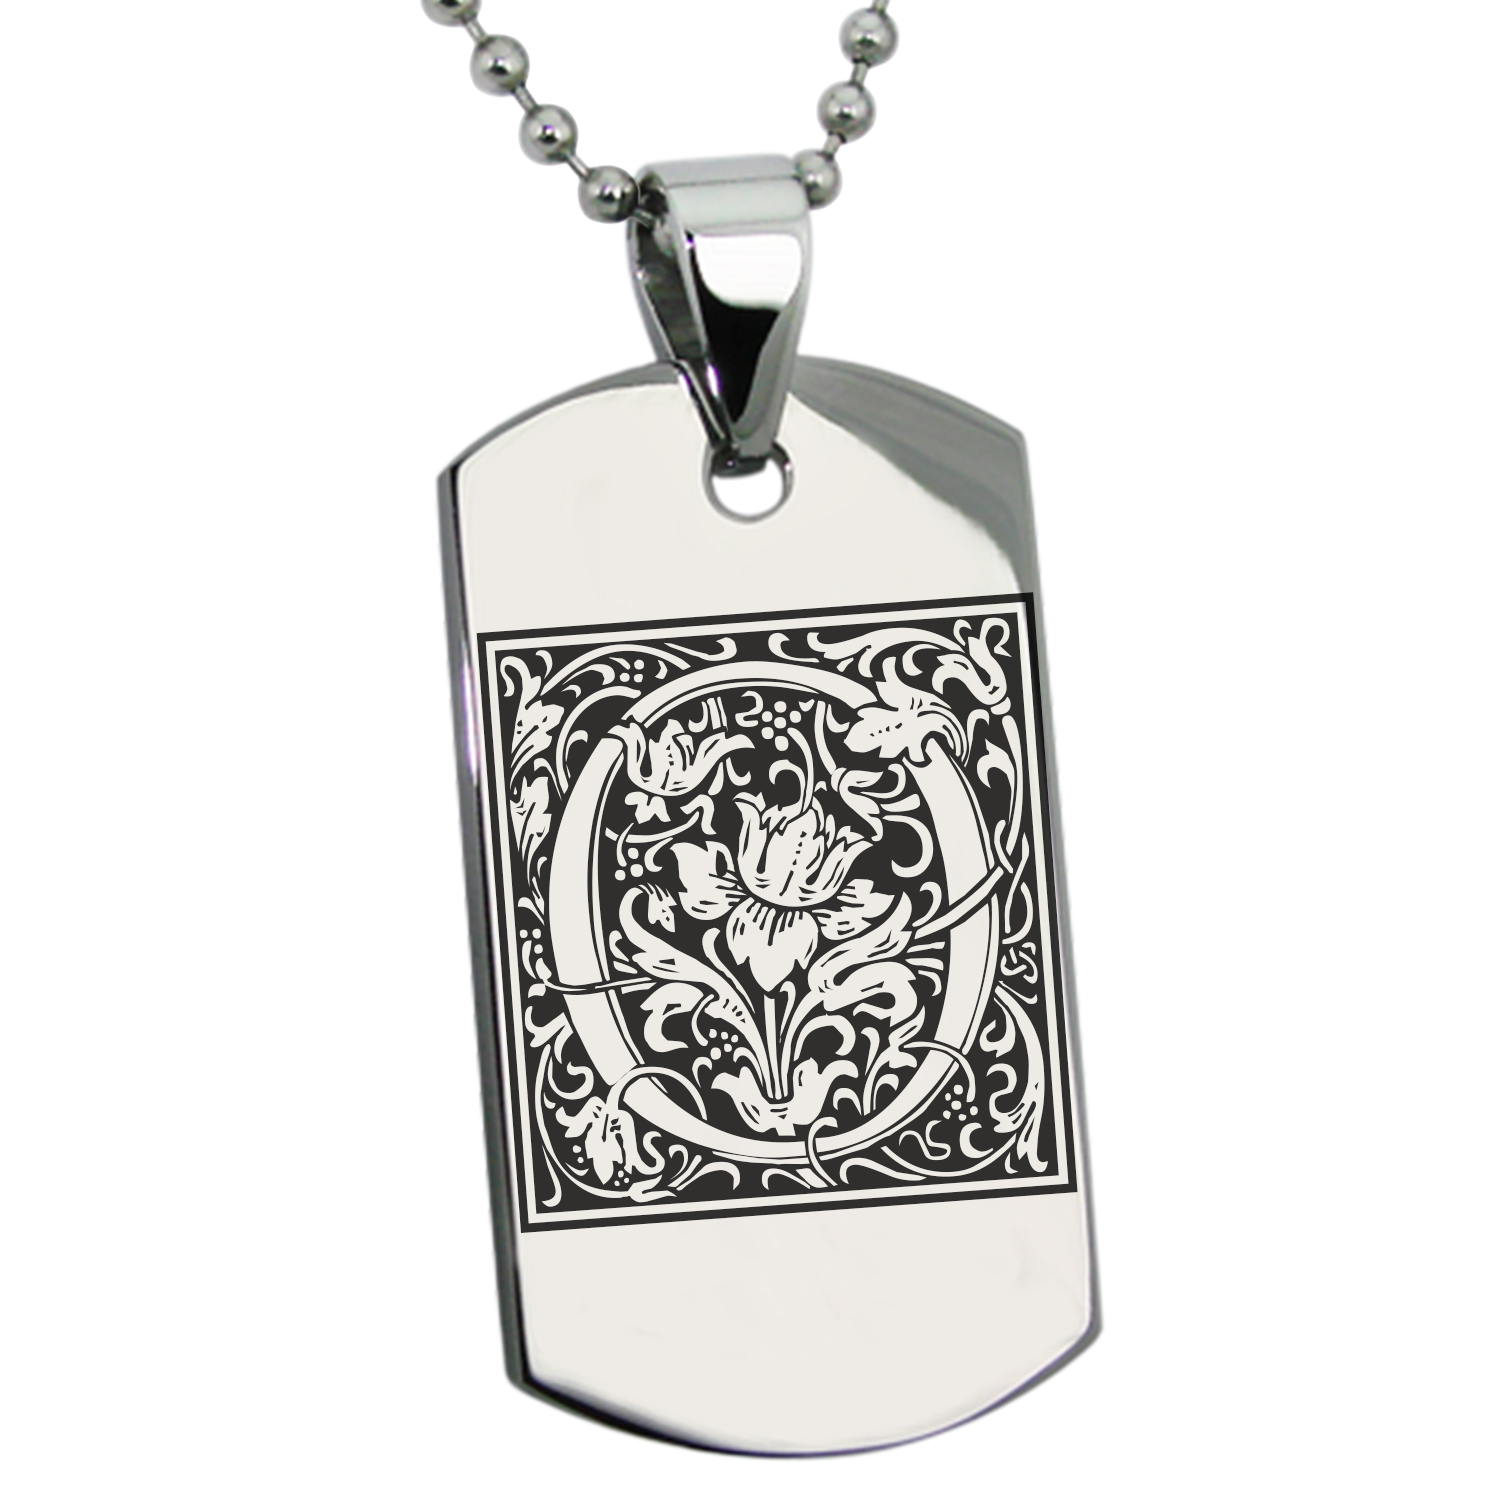 Stainless Steel Letter O Initial Floral Monogram Engraved Dog Tag Pendant